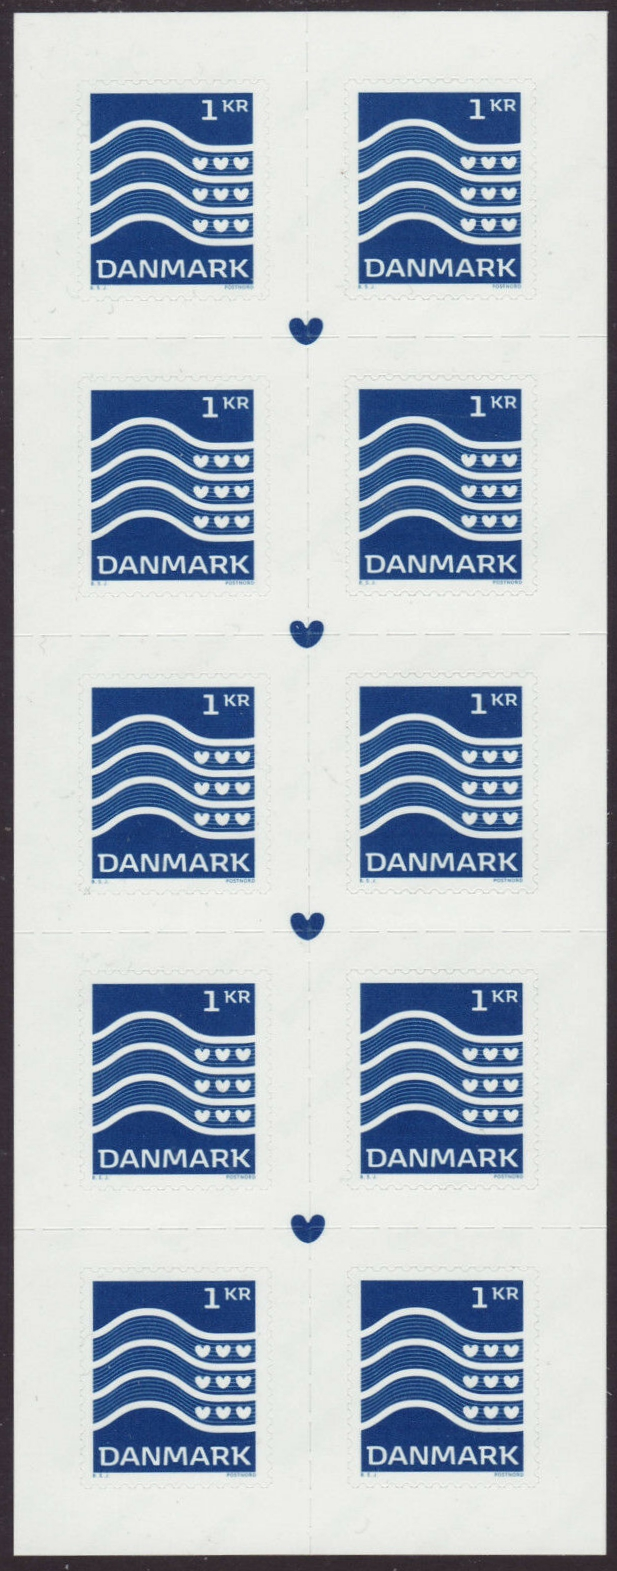 Denmark - Wavy Lines & Hearts definitive (January 2, 2019) booklet pane of 10